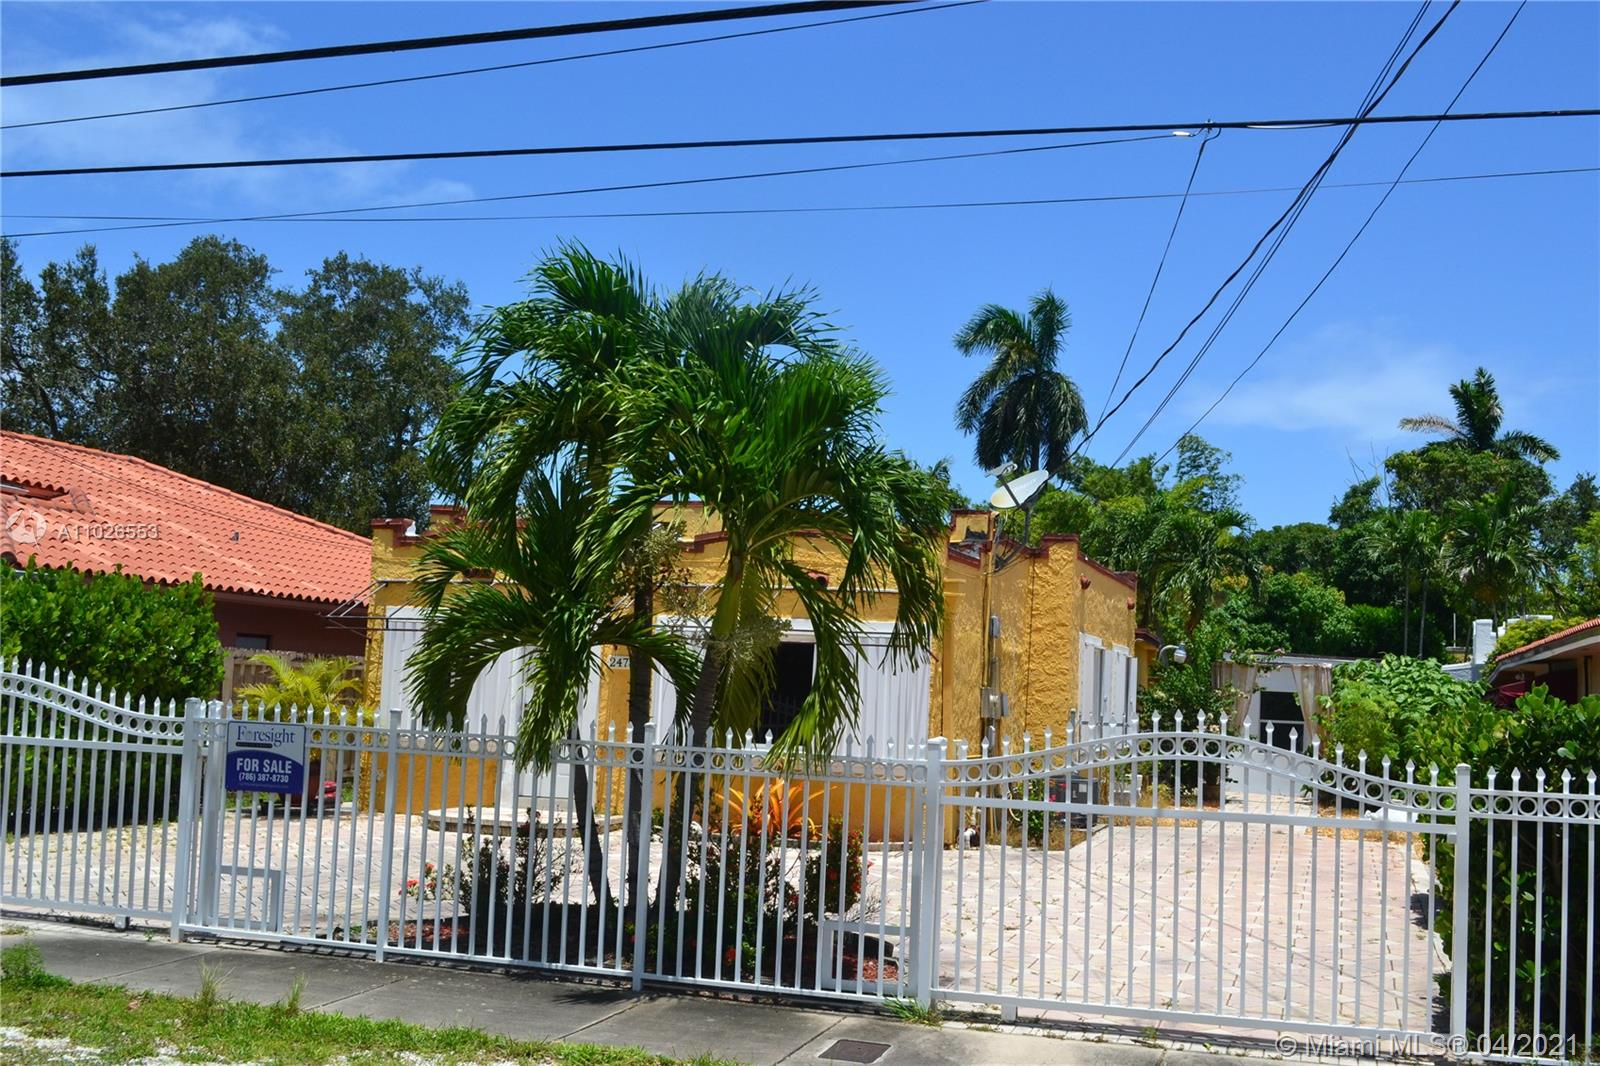 Great Opportunity to buy a Spanish Style Single Family Home at Stuart Subdivision nearly Coconut Grove, Downtown Miami, Coral Gable Shenandoah and The Roads. Main house is 3/2 with Stainless Steel Appliances, Granite Counter top, Tiled throughout and 2/1 Guest House with tiled throughout. Easy access all Expressway like I-95, Dolphin Expressway toward Miami Beach and Miami International Airport. Great for investor and first time buyers. Buyer need to review the attachment before make the appointment. Buyer is aware and acknowledges that there may be property defects, open or expired permits, code violations and/or liens against the property and assumes all and full responsibility for them. Buyer shall resolve all the outstanding issues after closing. Property is selling AS-IS.